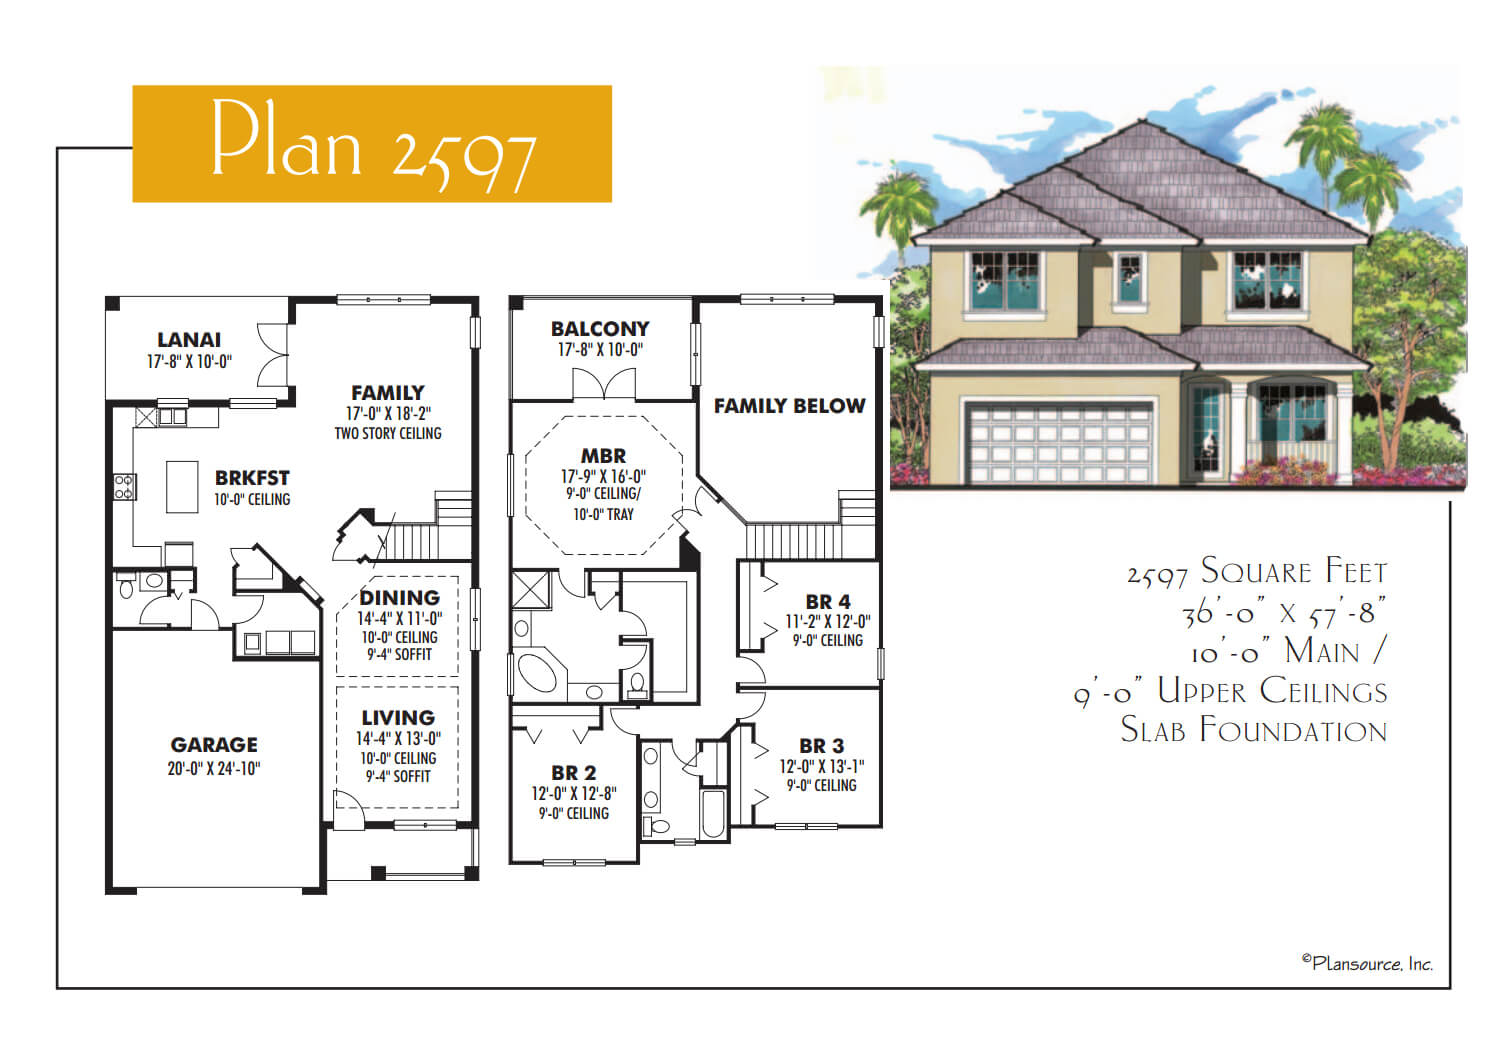 Floor Plans,2,501 SQ FT TO 3,000 SQ FT,1058